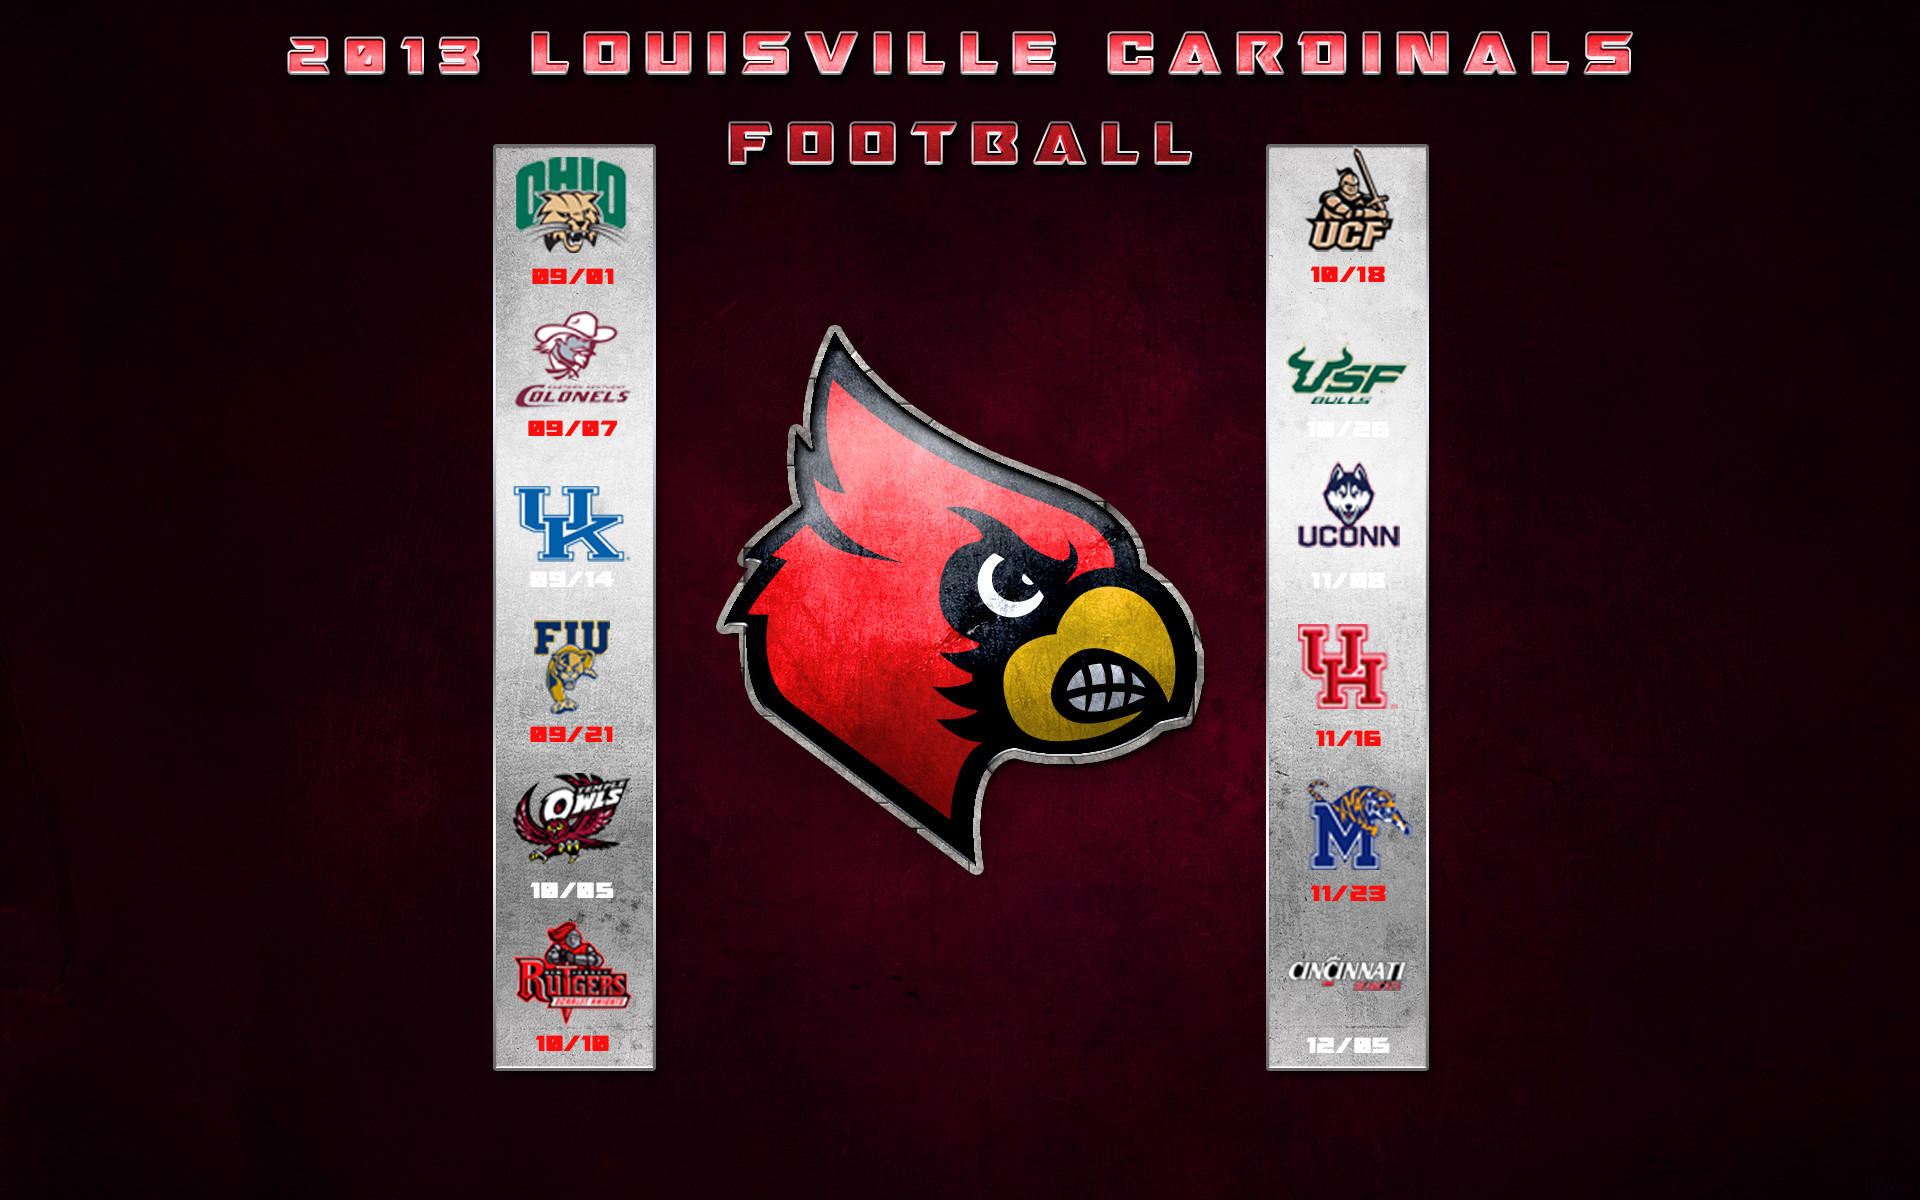 1920x1200 Louisville Cardinals Wallpaper Free 1200×900 Louisville Cardinals Wallpapers  (21 Wallpapers) | Adorable